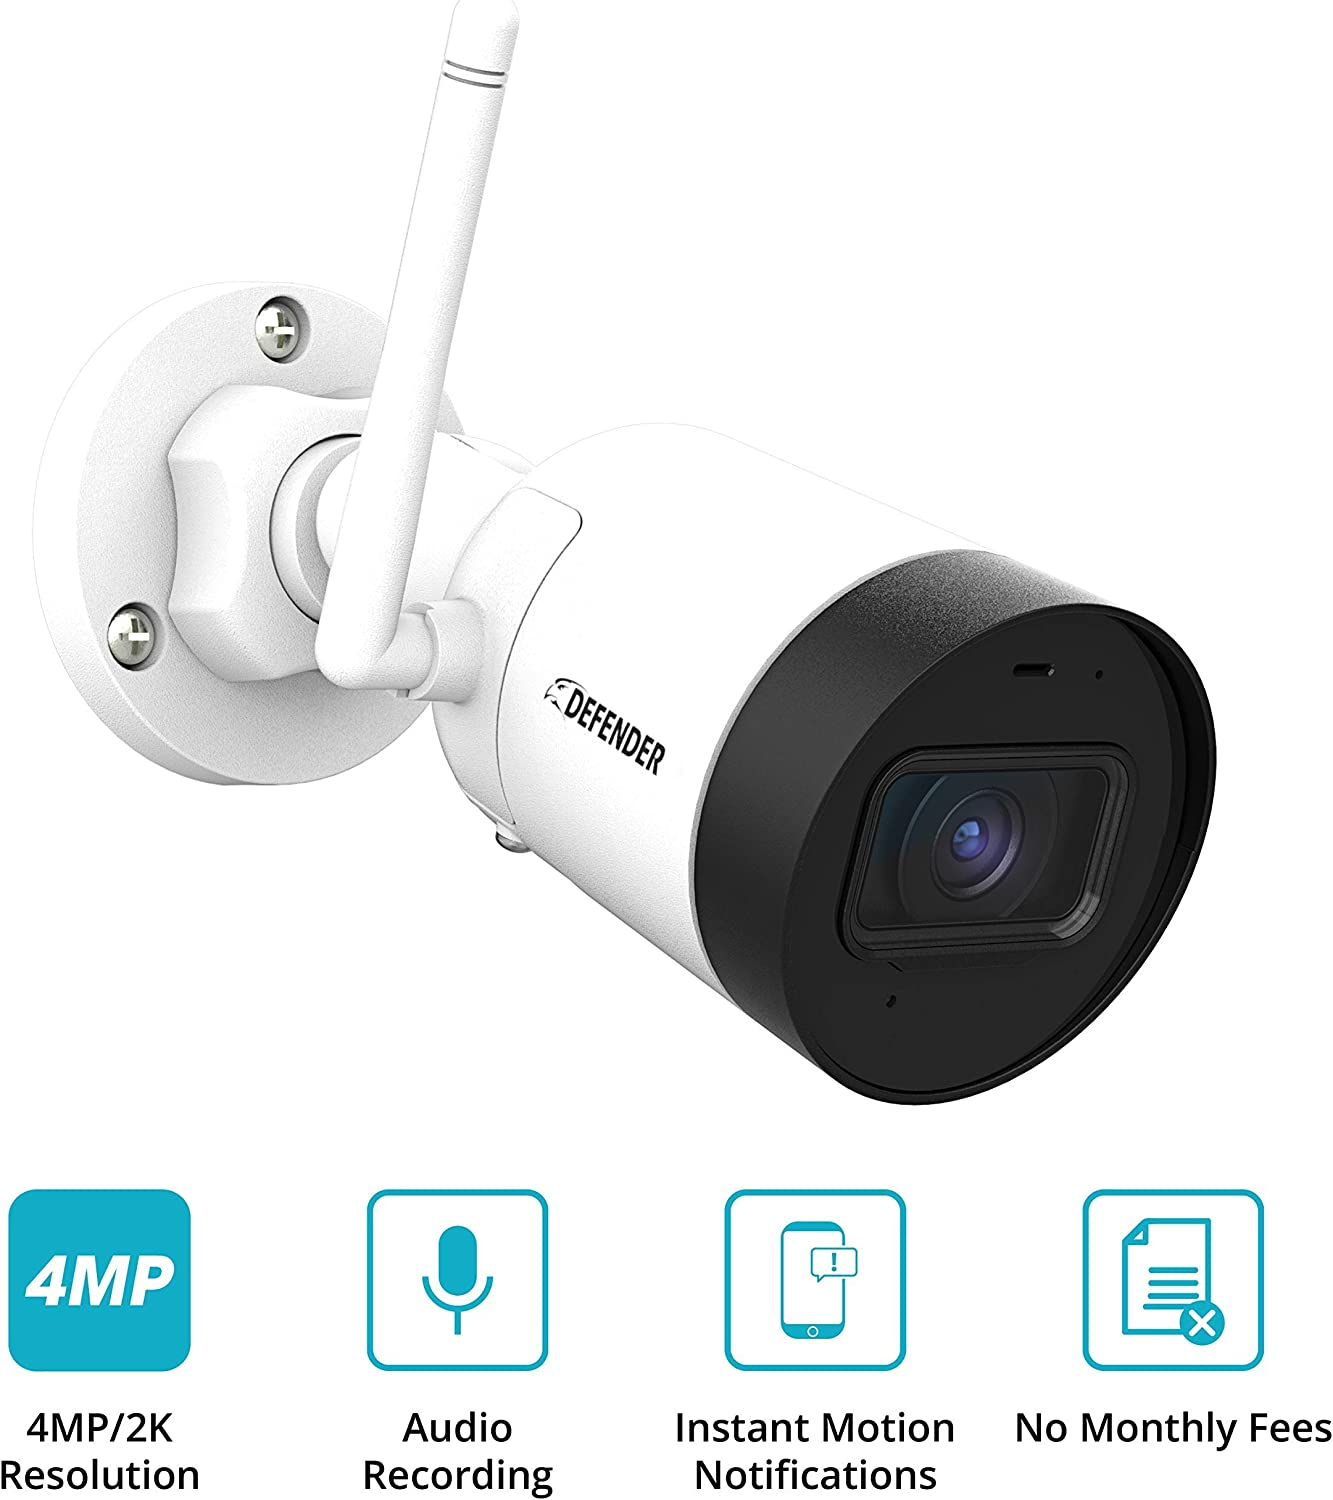 Defender Guard Wireless Outdoor/Indoor Security Camera with HD 2K Resolution, Mobile Viewing, Audio Recording, Motion Detection and No Monthly Fees